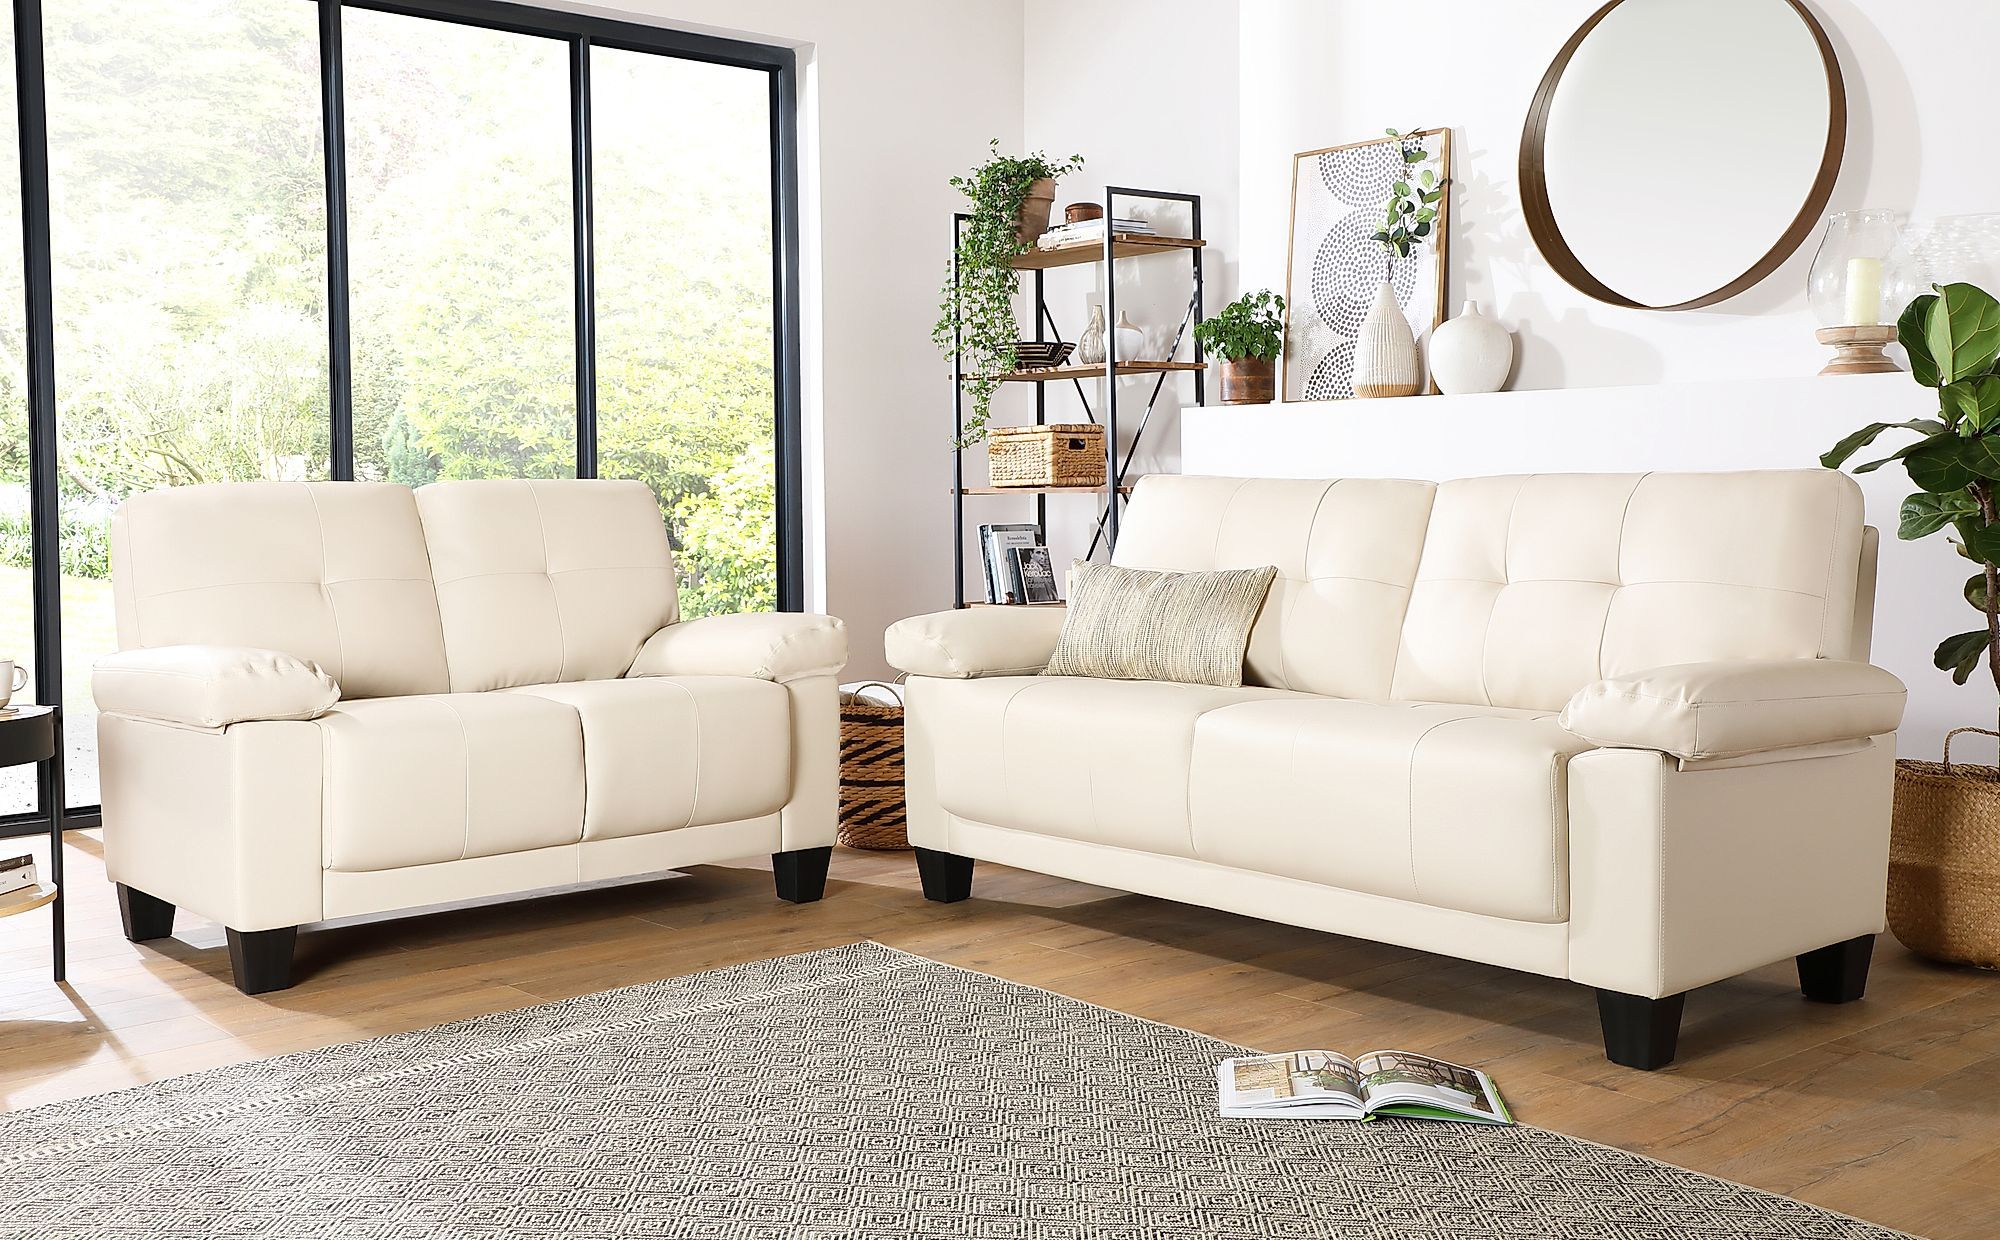 Linton Small Ivory Leather 3 2 Seater Sofa Set Sofa Set